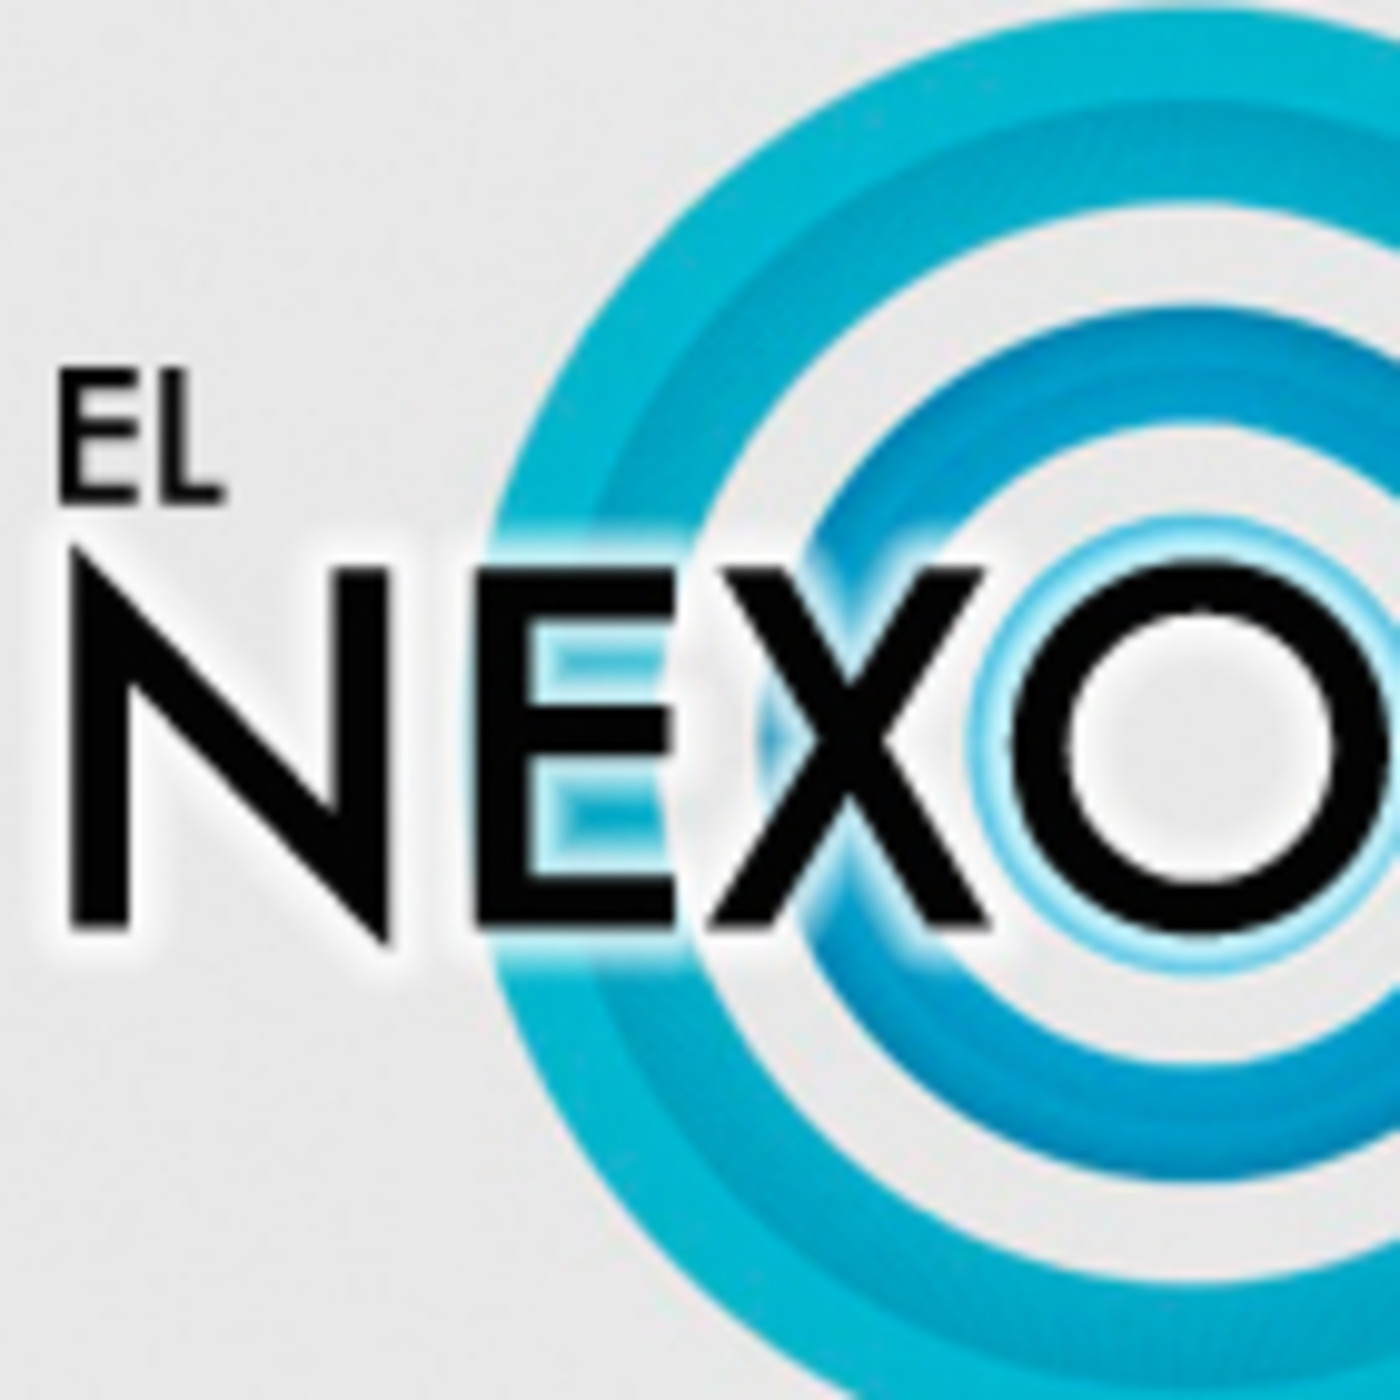 EL NEXO 2x34 - Xbox Games Showcase | Comentarios final de temporada